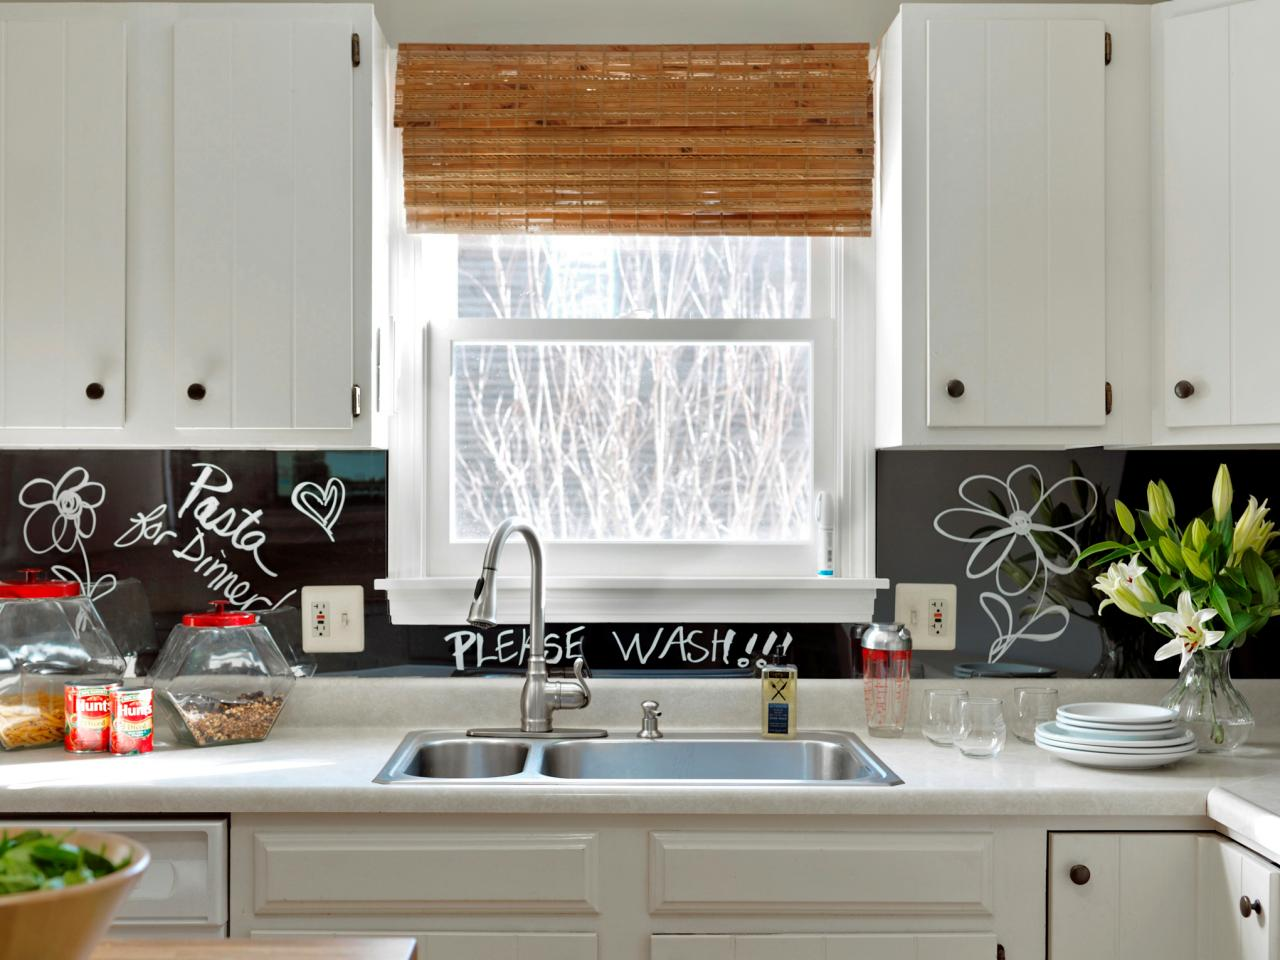 How To Make A Backsplash Message Board